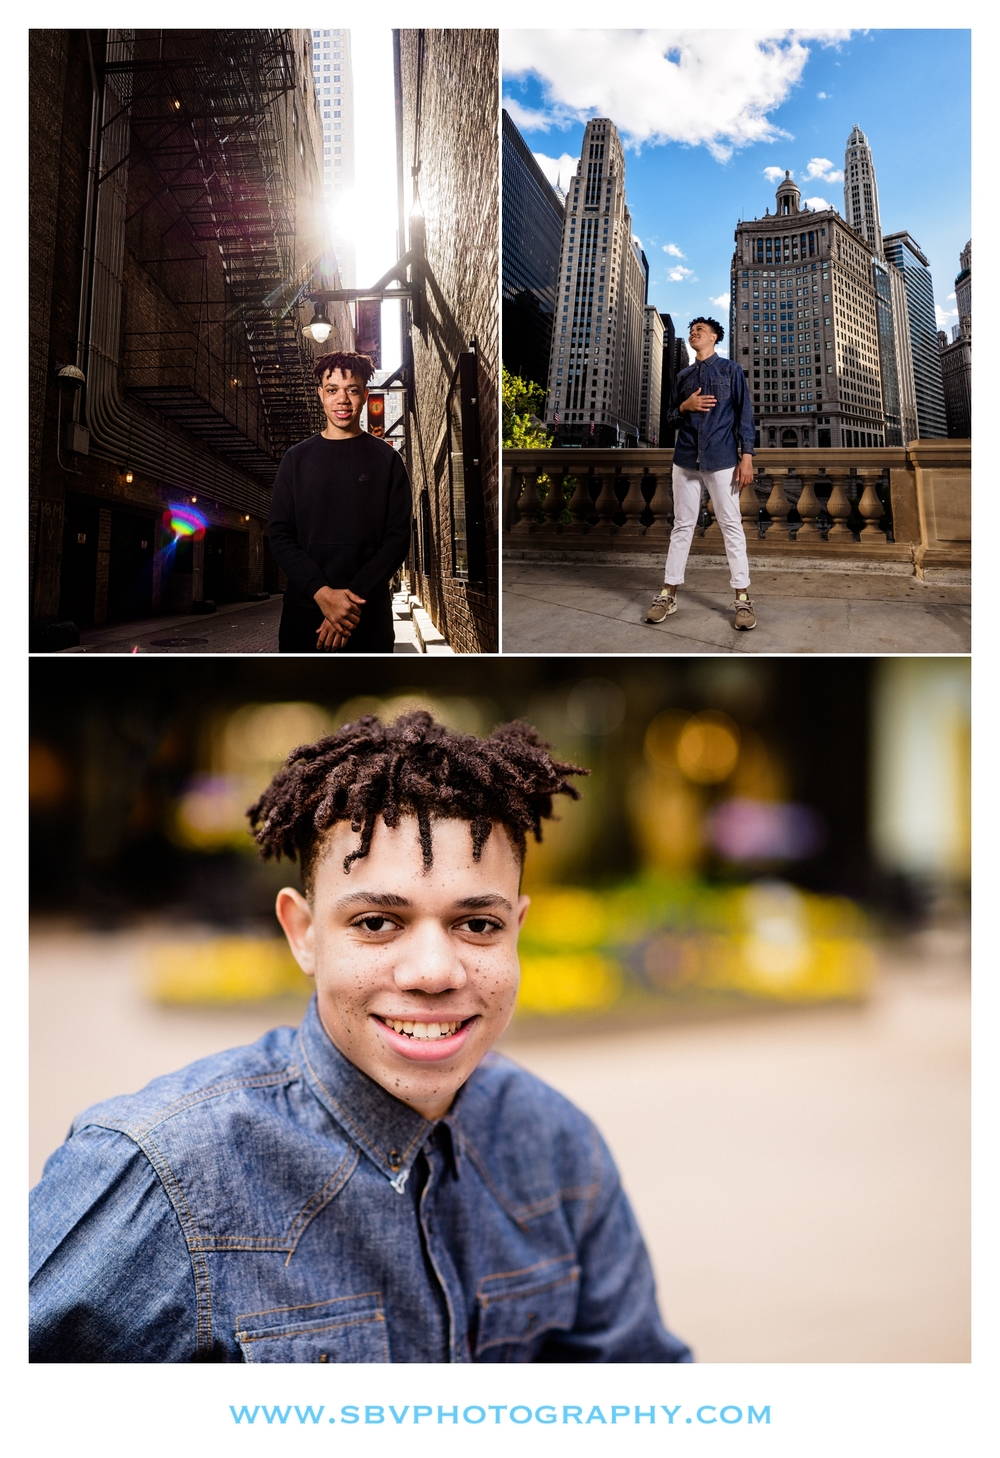 Senior photos in the 'City of Big Shoulders' - Chicago, IL.